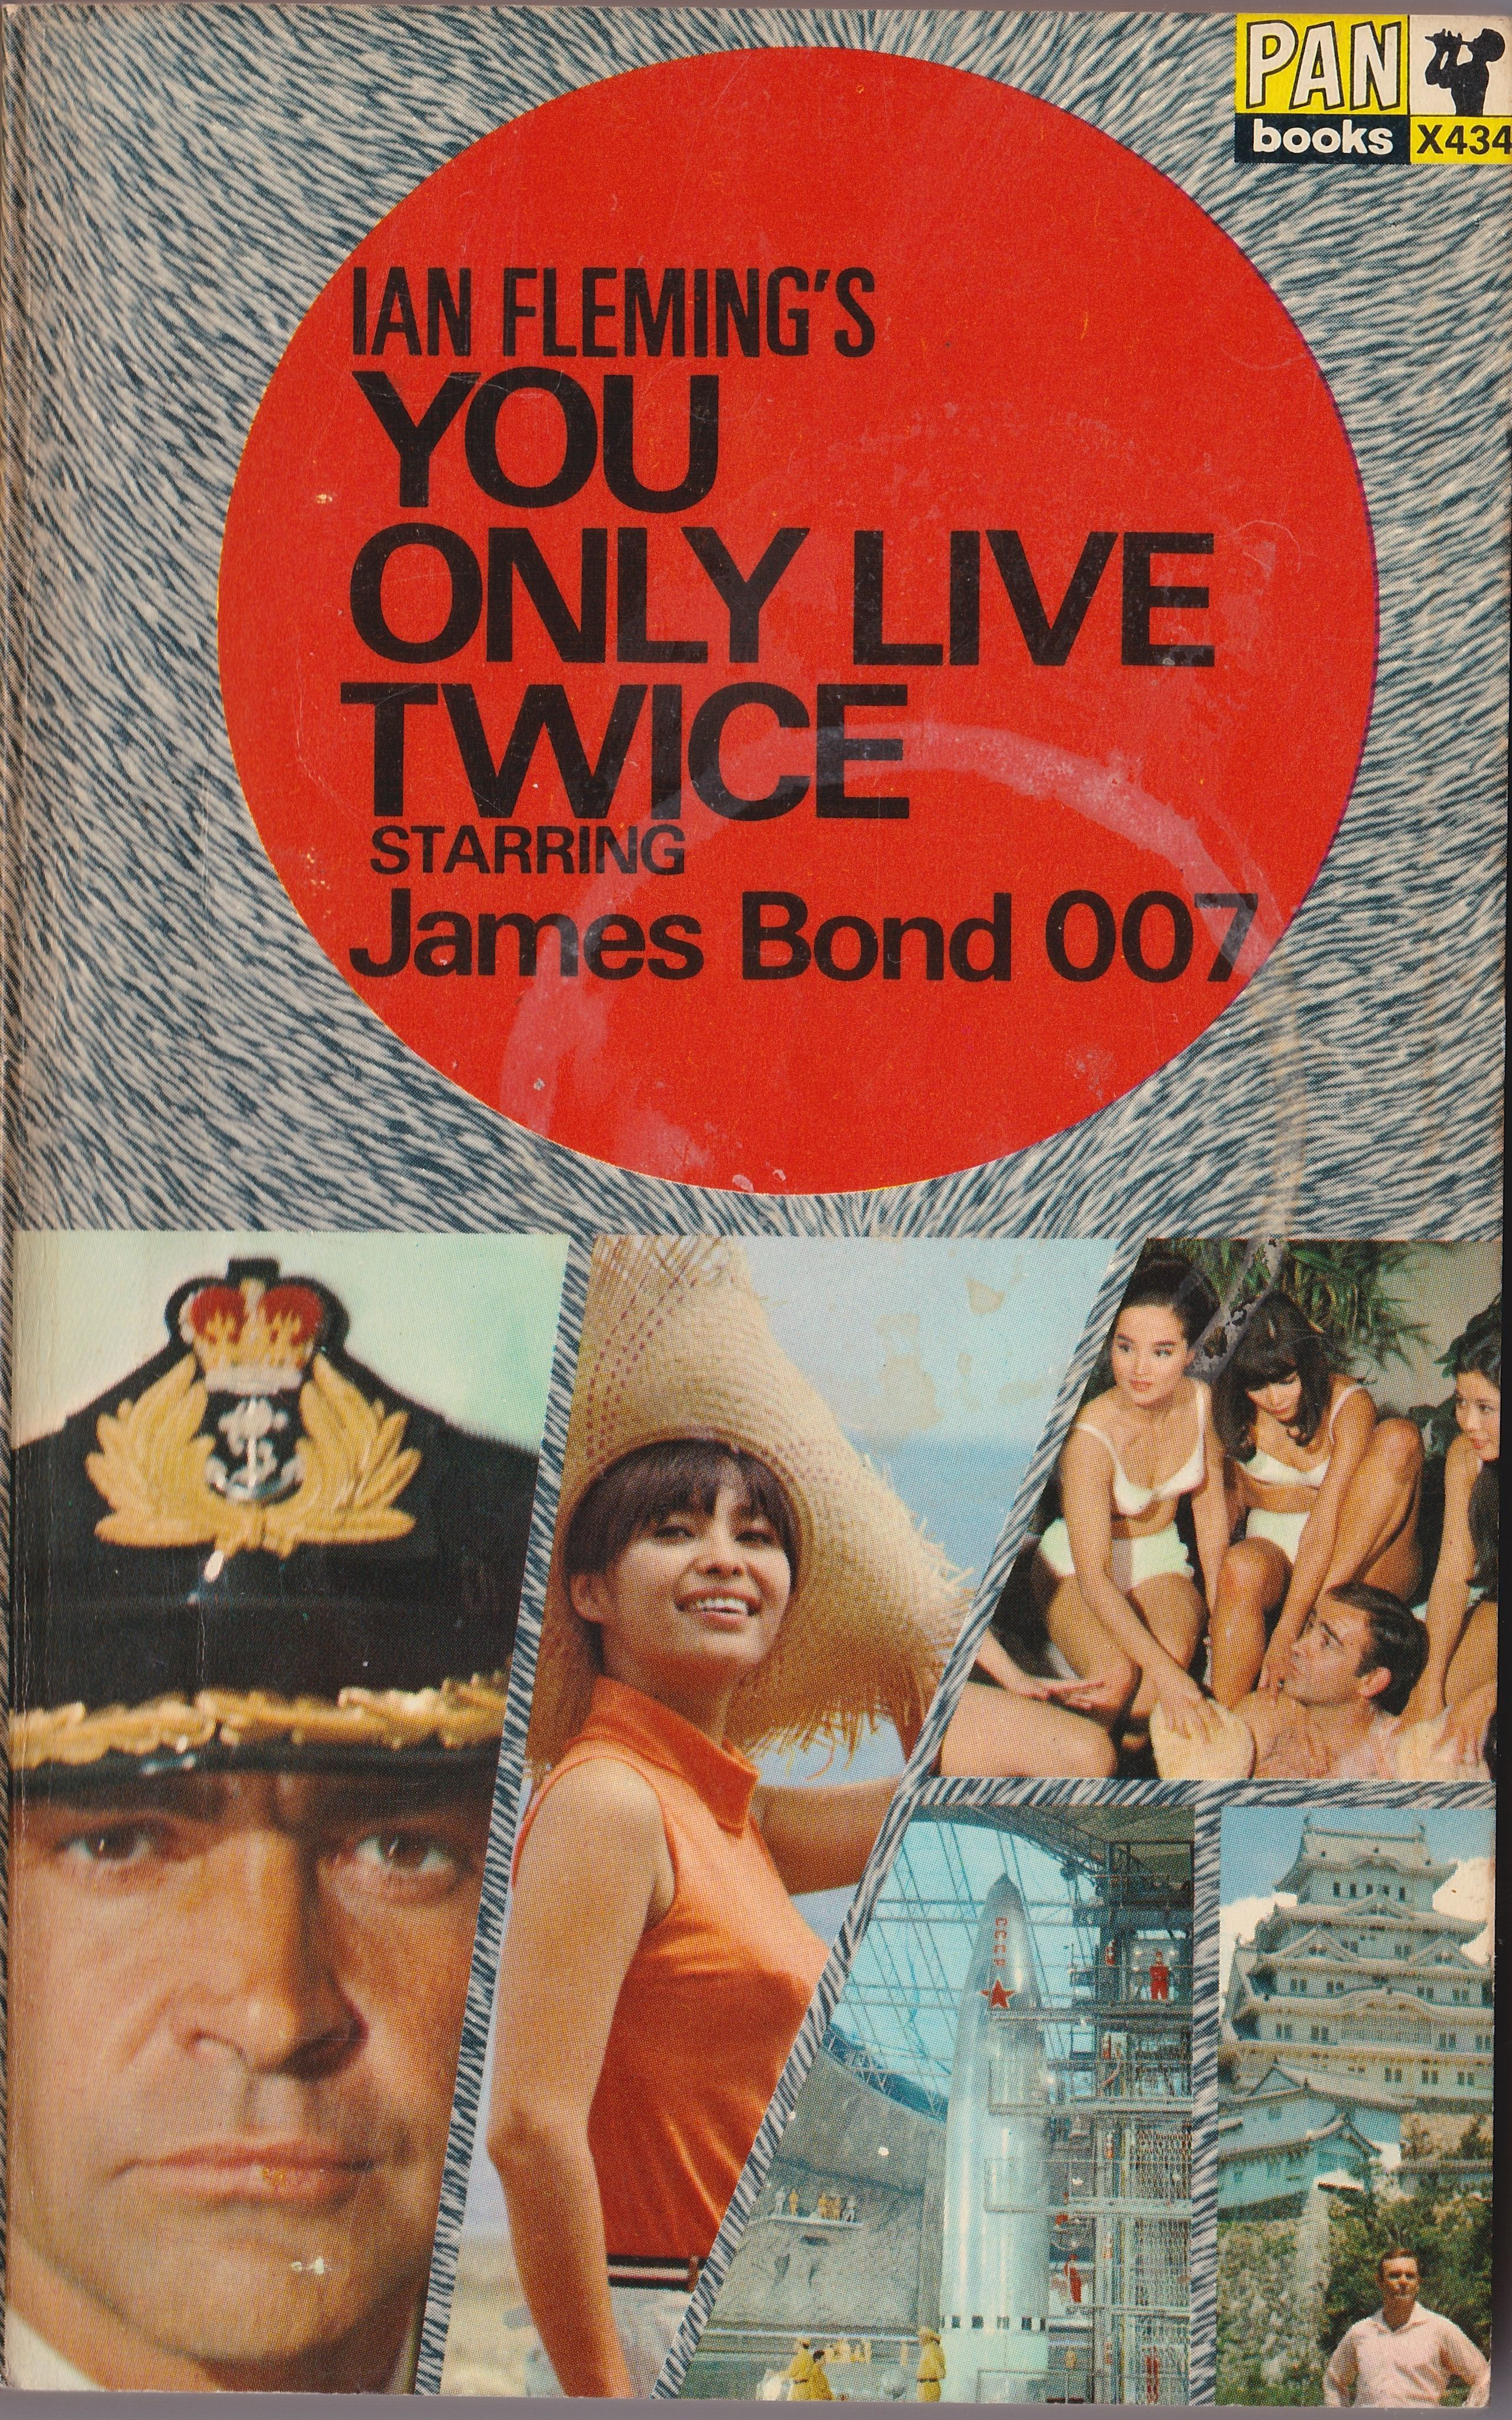 Ian Fleming: You only live twice. Pan Books 1966 (2nd printing)